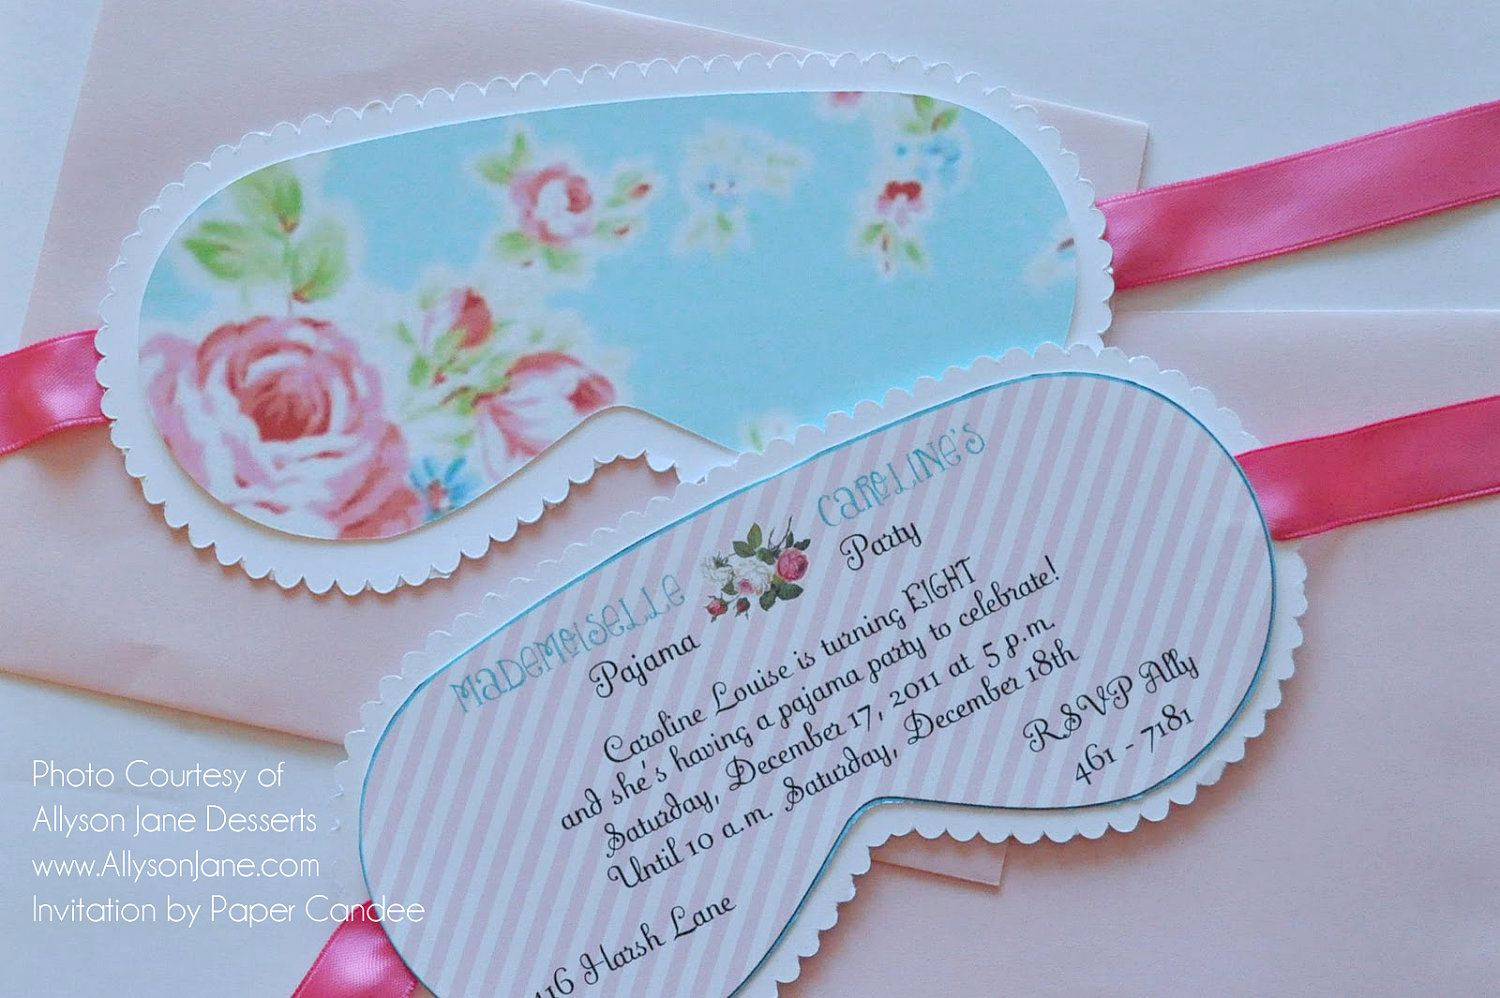 Sleep Mask Invitation Template Fresh Shabby Chic Sleep Over Party Collection assembled by